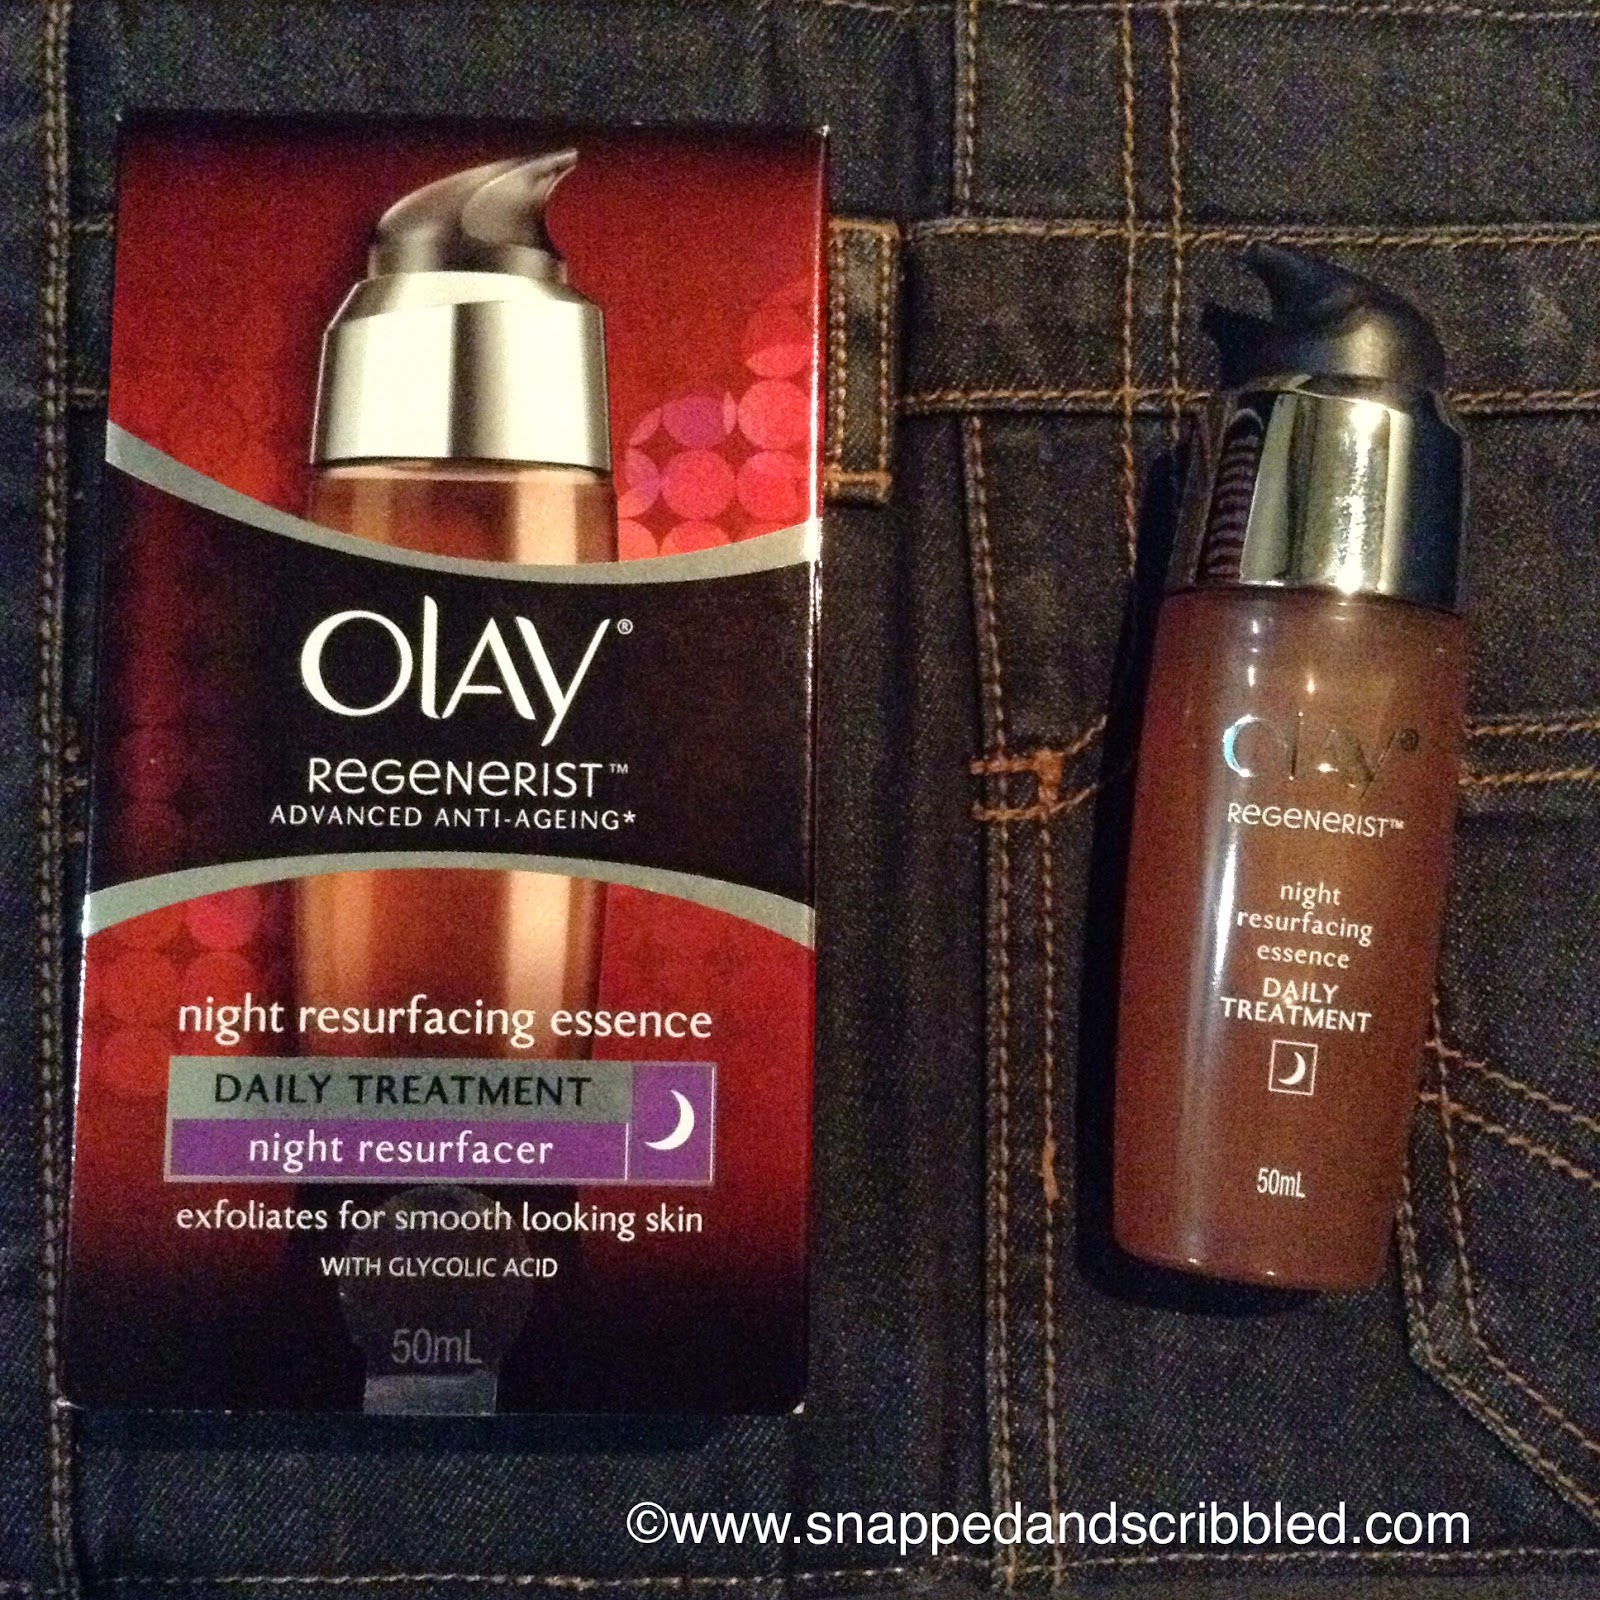 What Beauty Product To Try: Olay Regenerist Night Resurfacing Essence